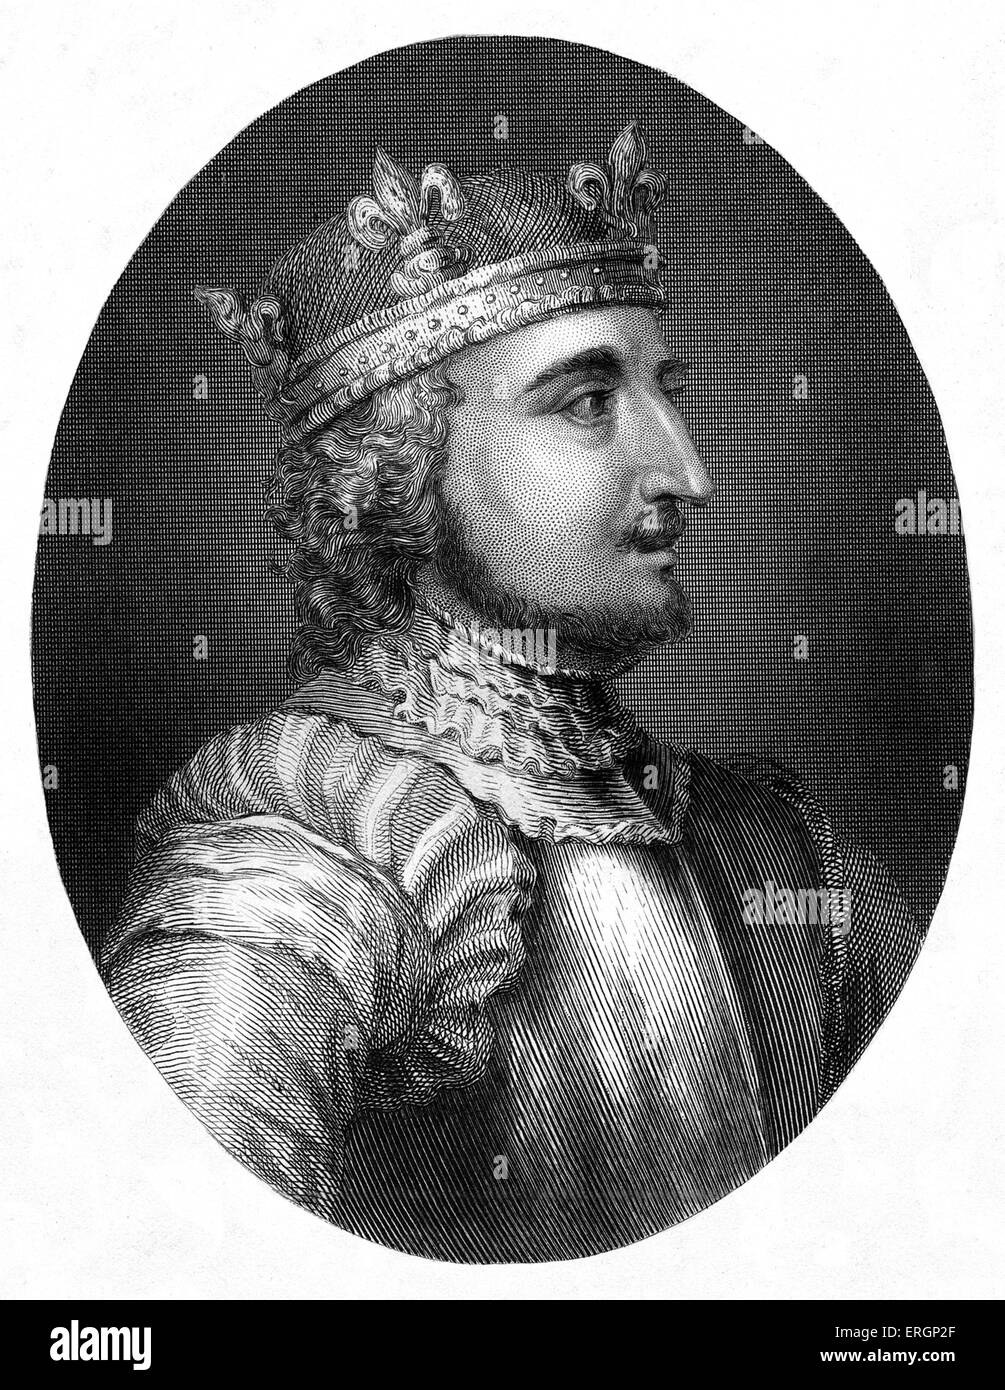 Stephen I or Stephen of Blois, portrait. King of England from 1135 to his death. 1092/6 – 25 October 1154. - Stock Image